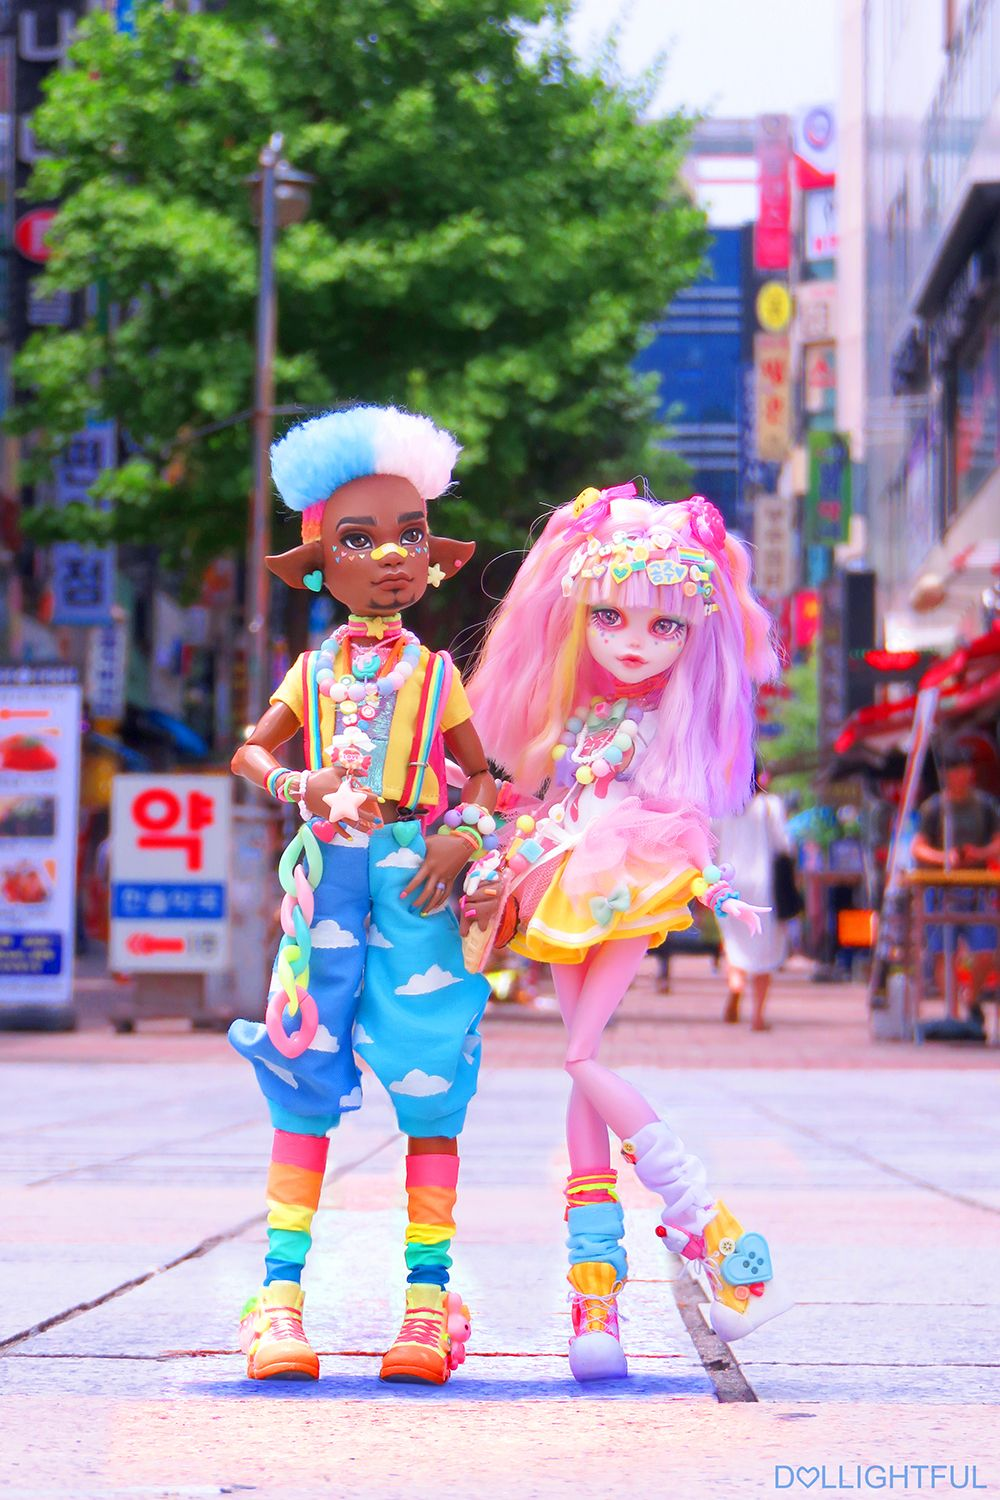 BFFs Juwon and Ayako! Harajuku Decora Kei Street fashion dolls by Dollightful #dolls